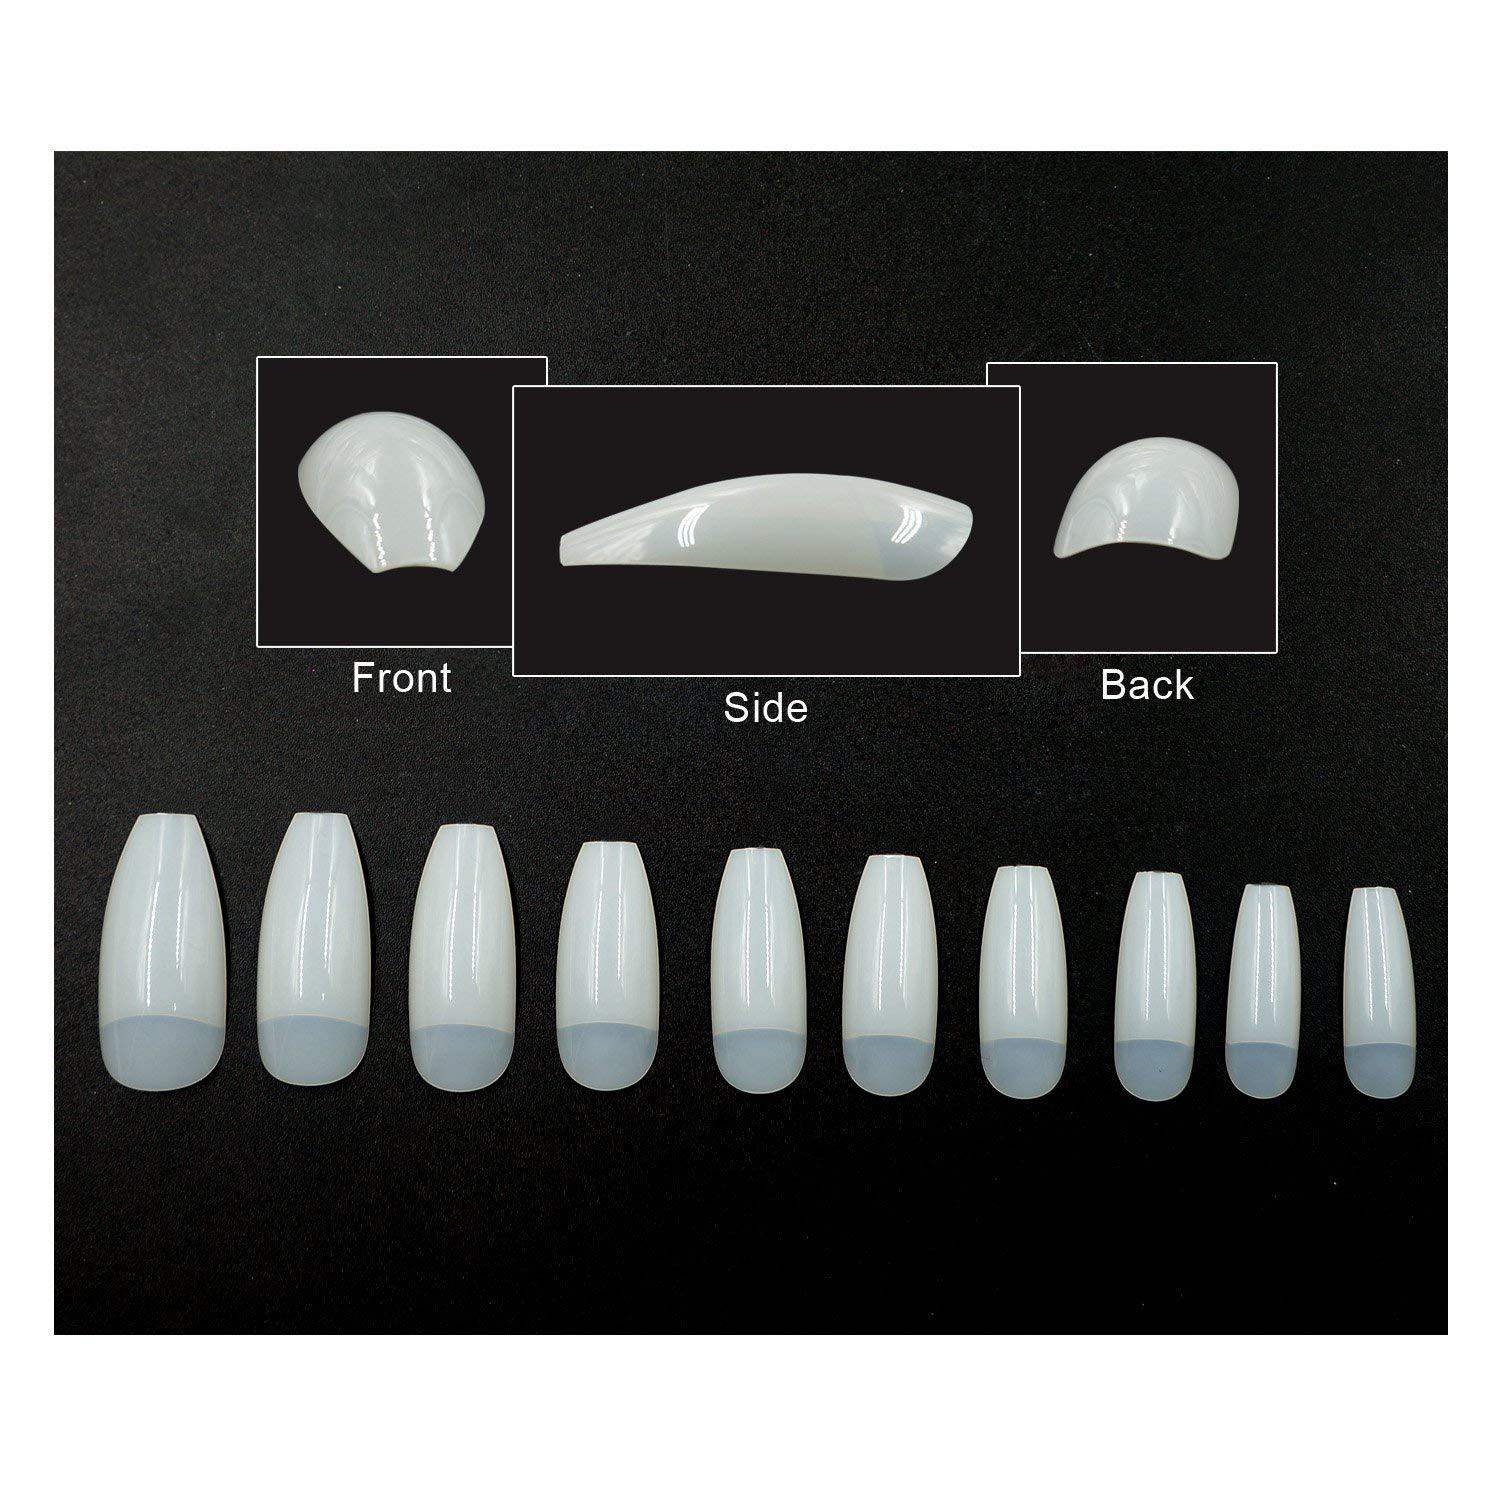 Manicure Phototherapy Ballet Nail Tip Finished Product Fake Nails Nail Sticker Oily Glue Flat Head Ban Tie Nail Tip Coffin Nail